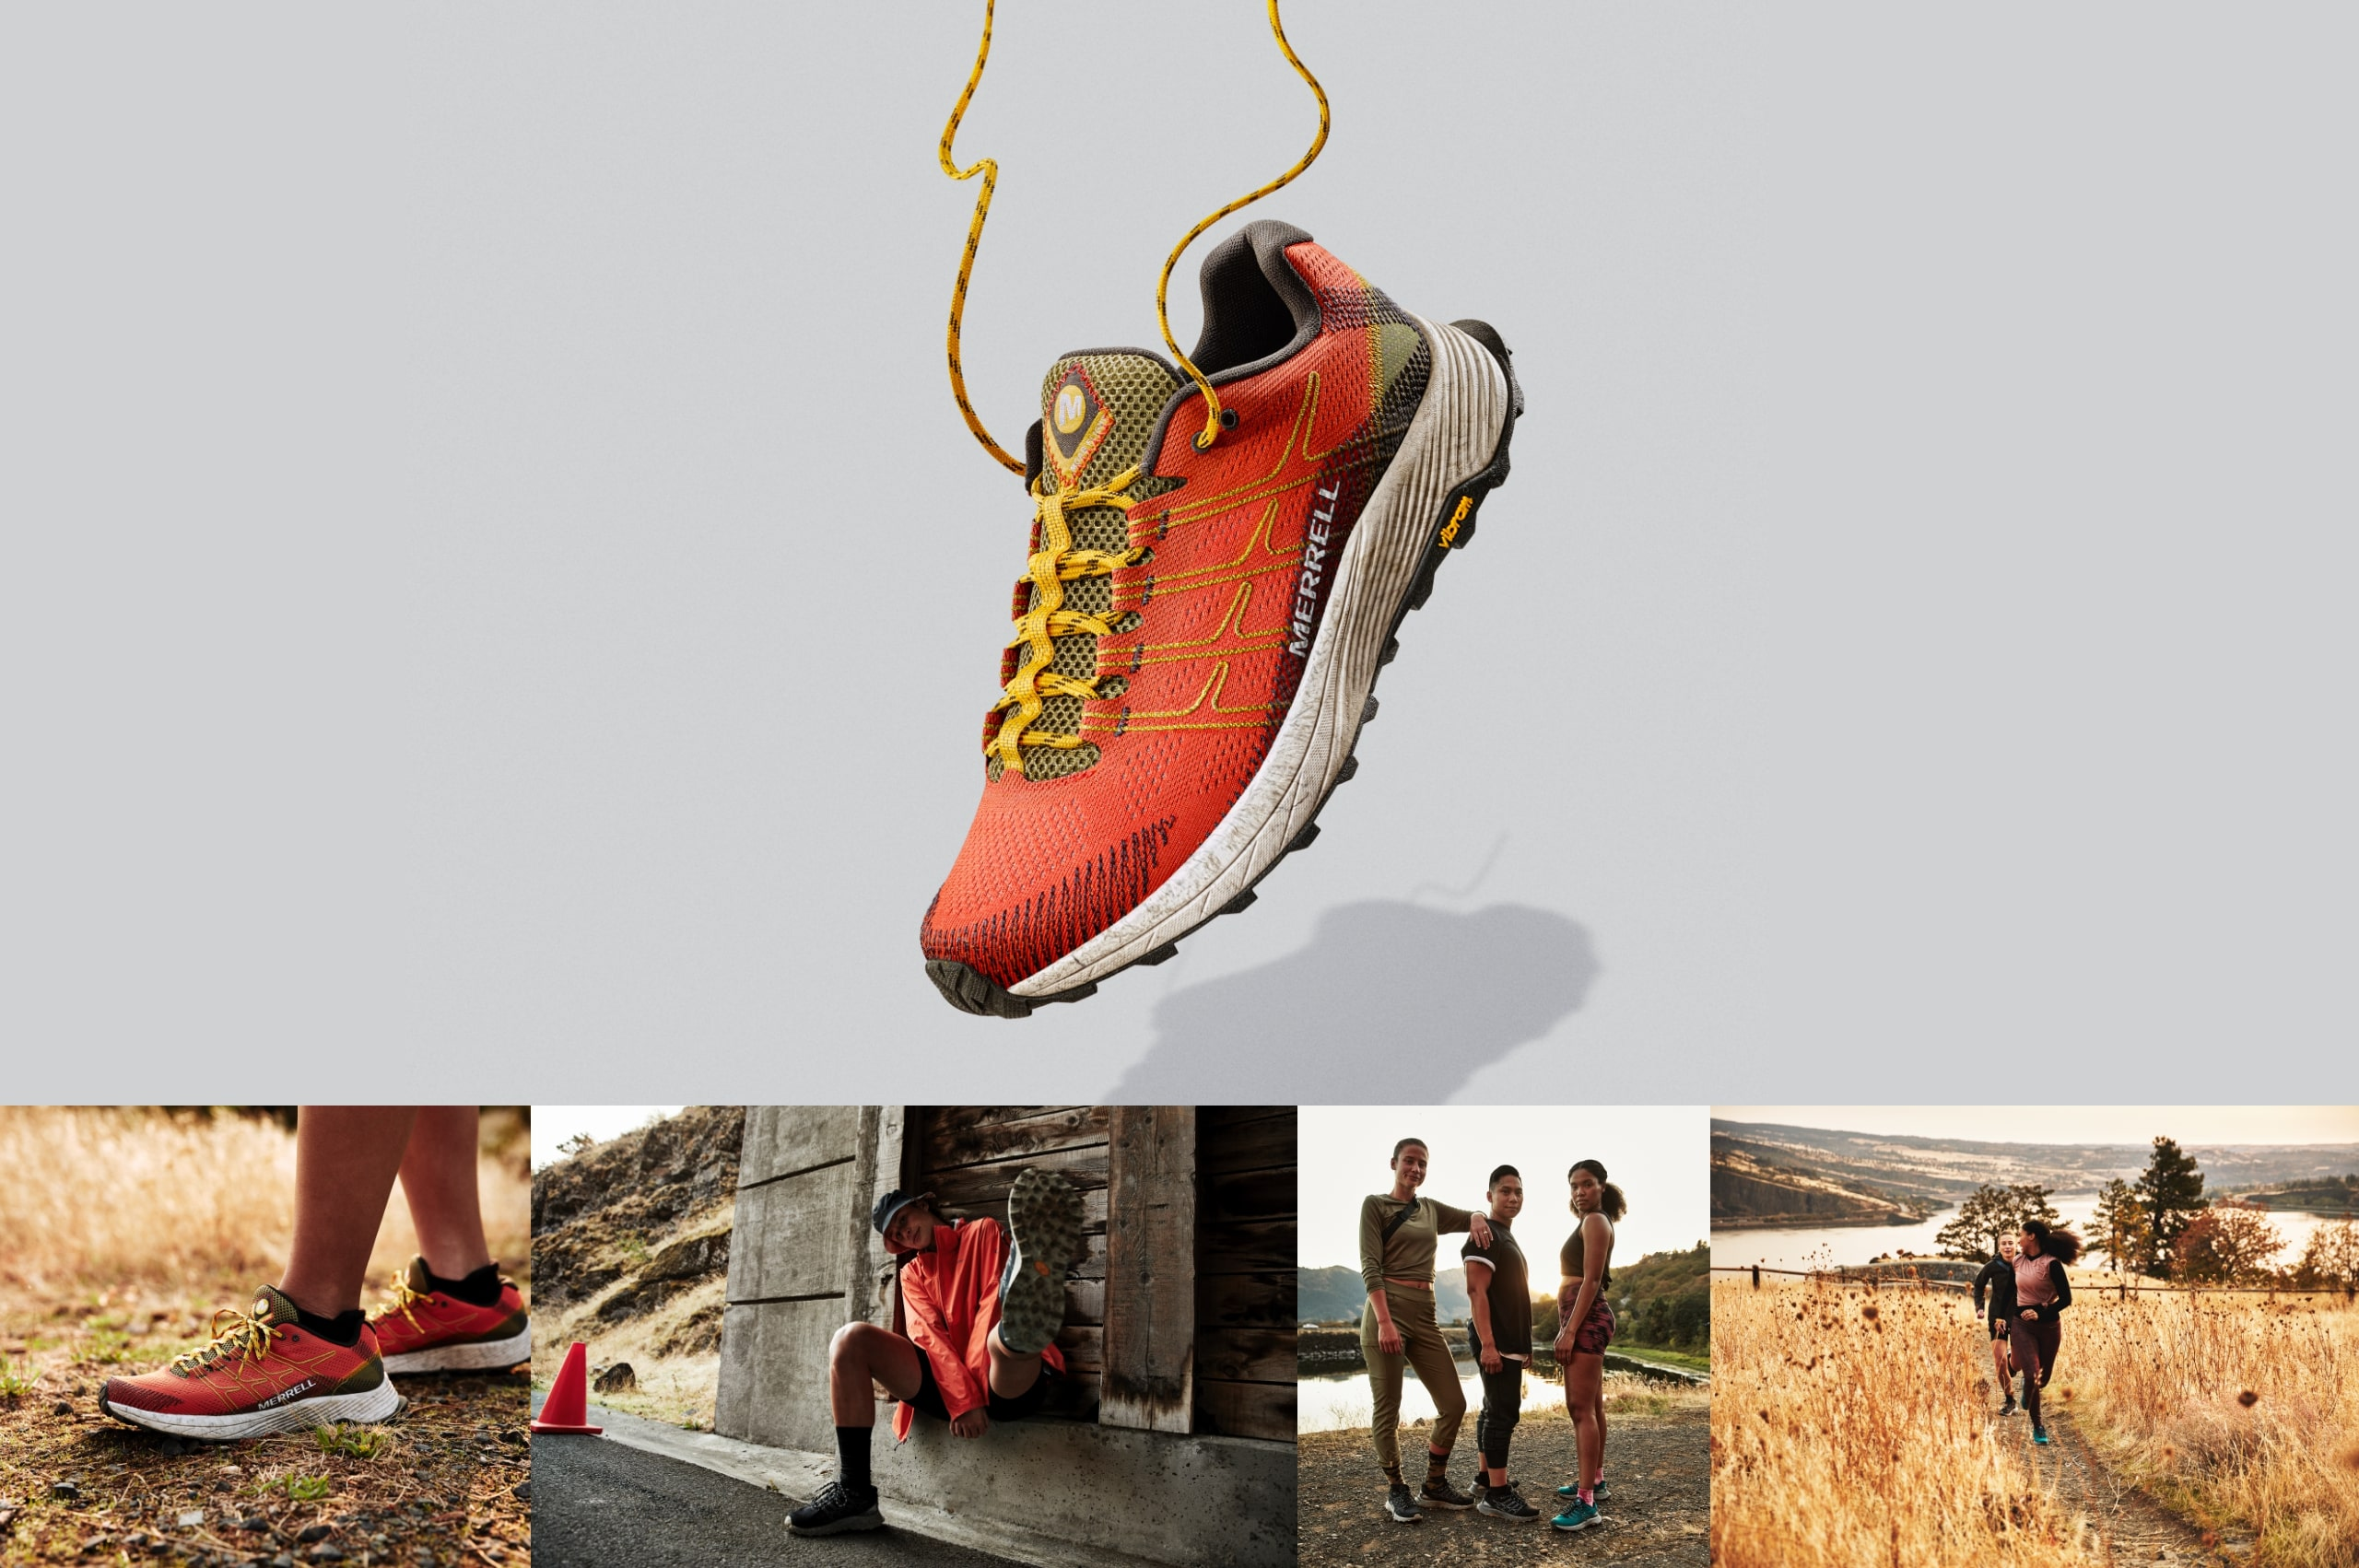 Red Merrell Moab shoe.